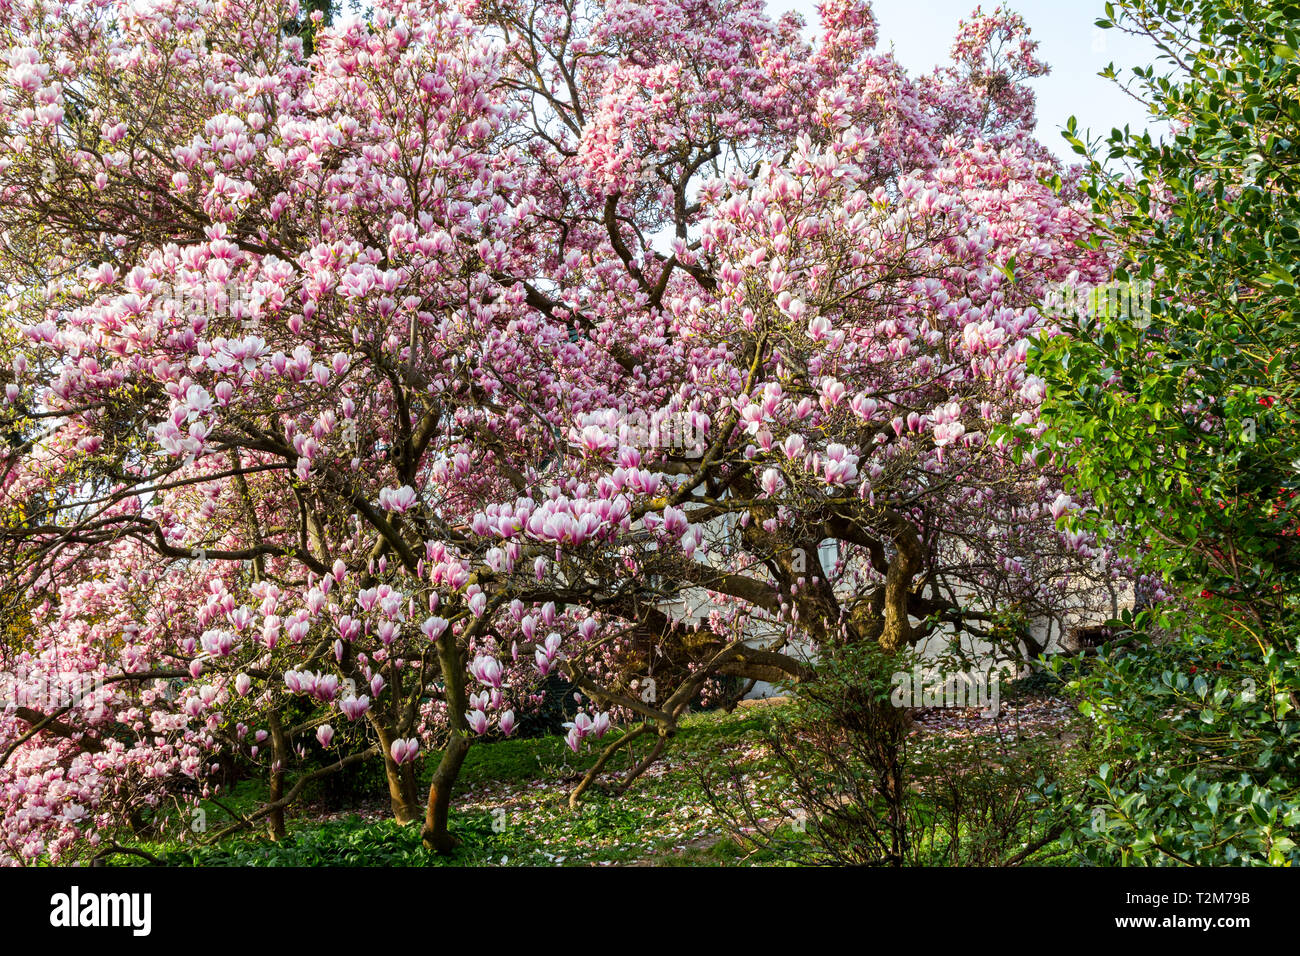 Old Magnolia Tree Stock Photos Old Magnolia Tree Stock Images Alamy